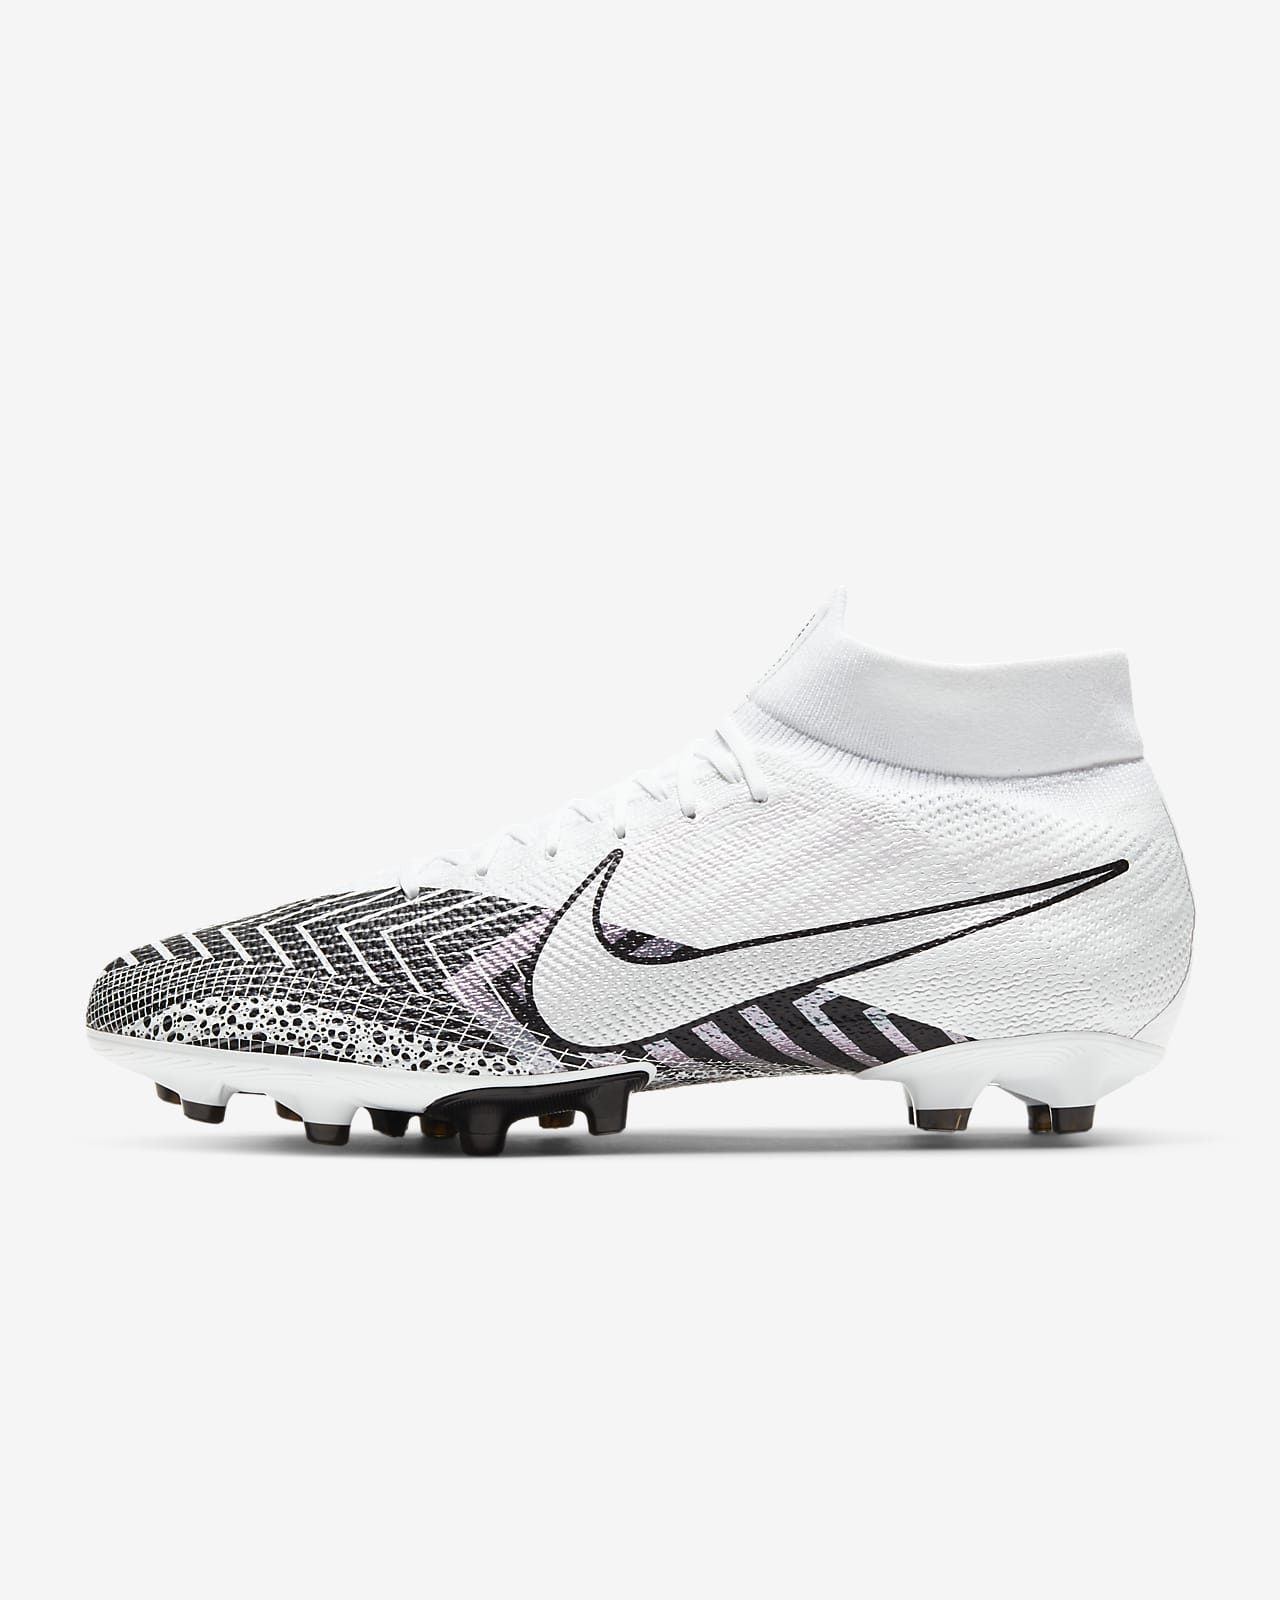 Nike Mercurial Superfly 7 Pro MDS AG-PRO Artificial-Grass Football Boot